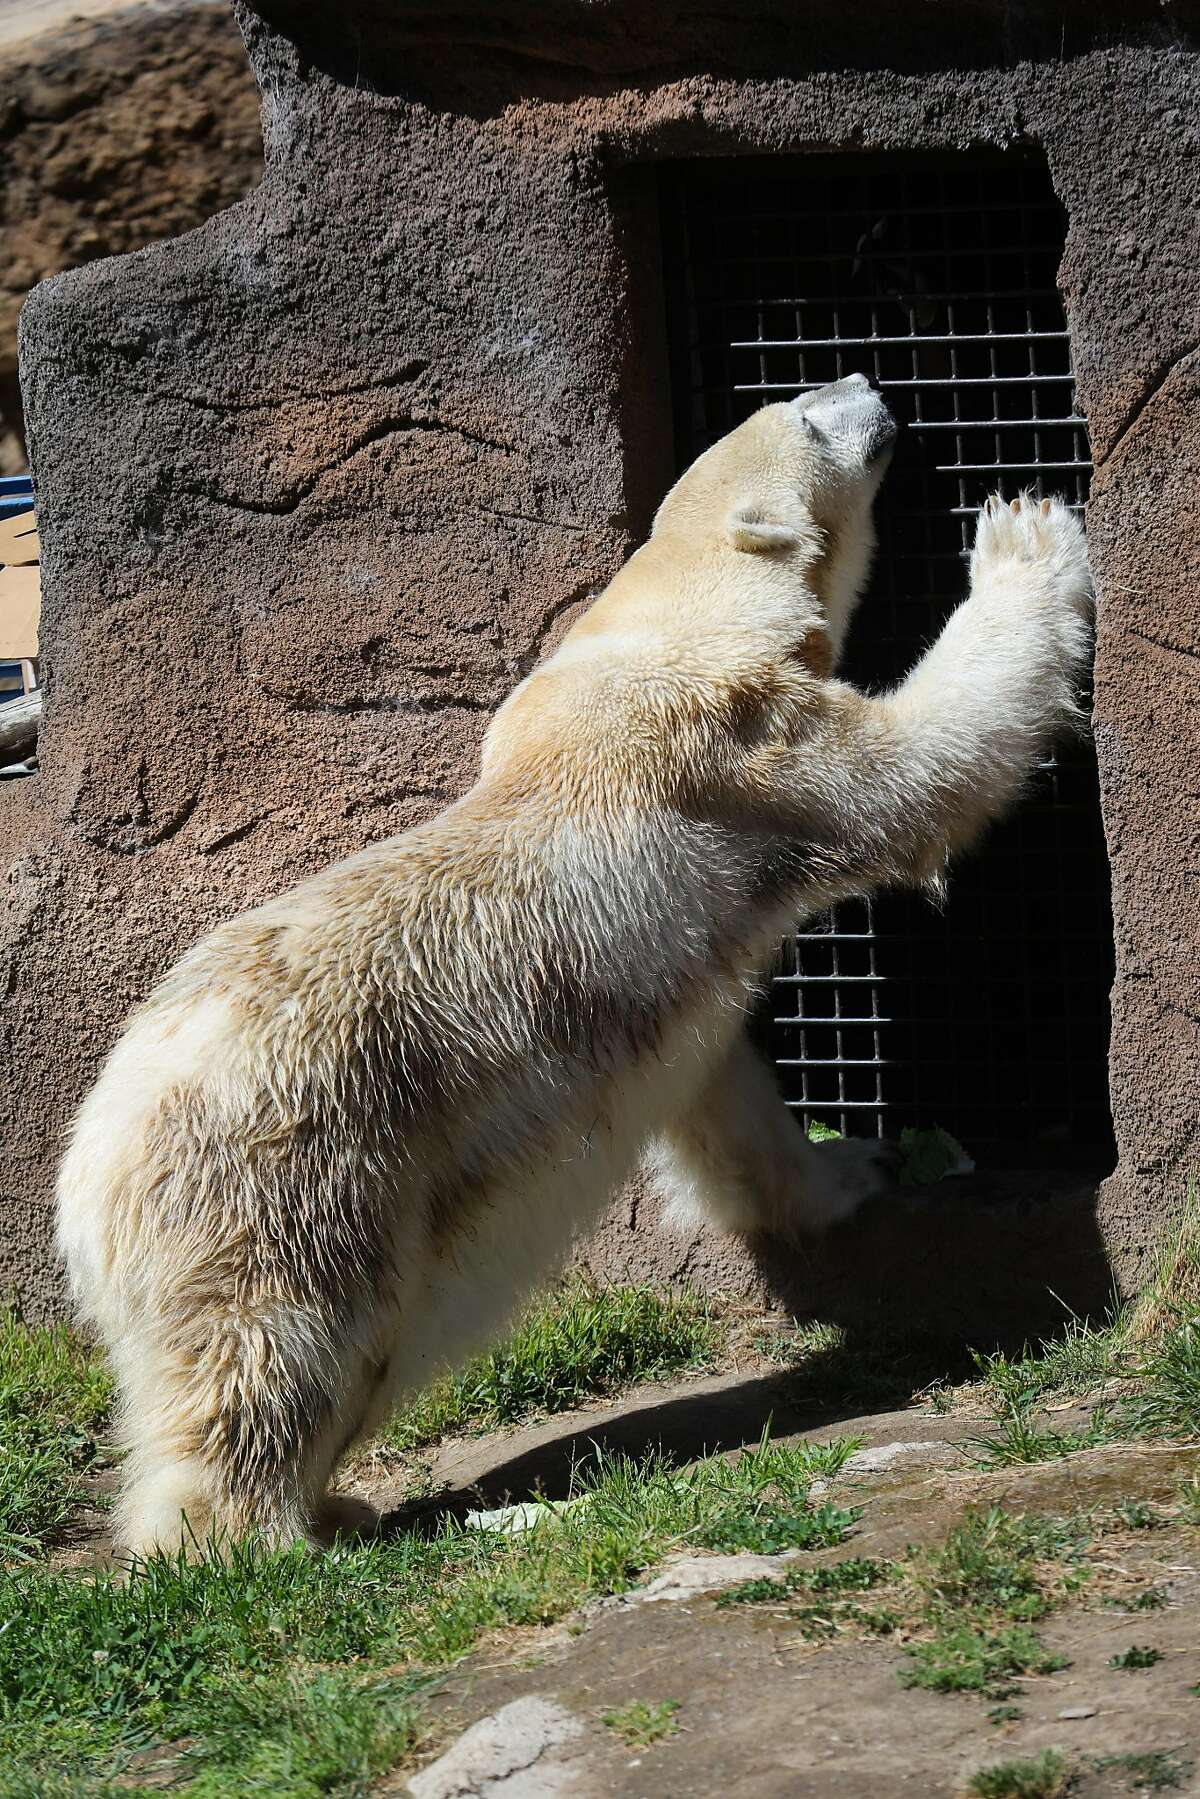 Polar Bear Uulu, one of the oldest polar bears in captivity, can be seen showing her paw to a zookeeper, in her enclosure at the San Francisco Zoo, in San Francisco, California, on Friday, April 22, 2016.